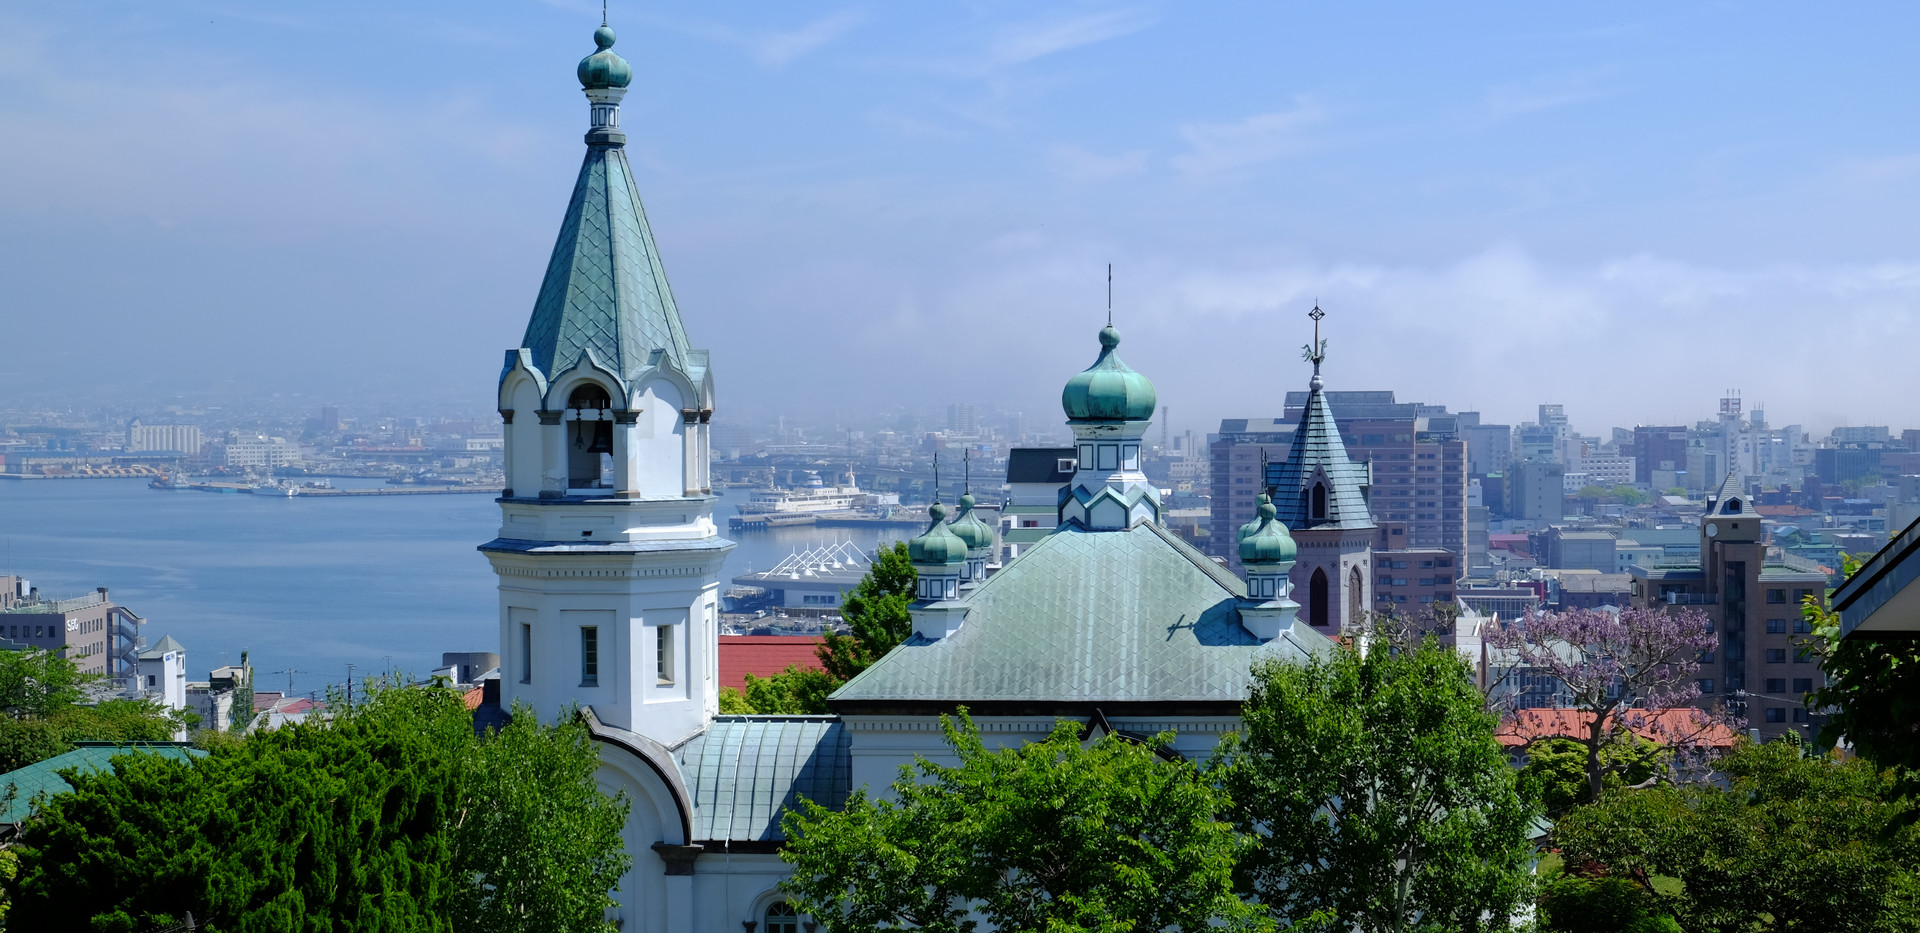 Hakodate_Orthodox_Church-3.jpg